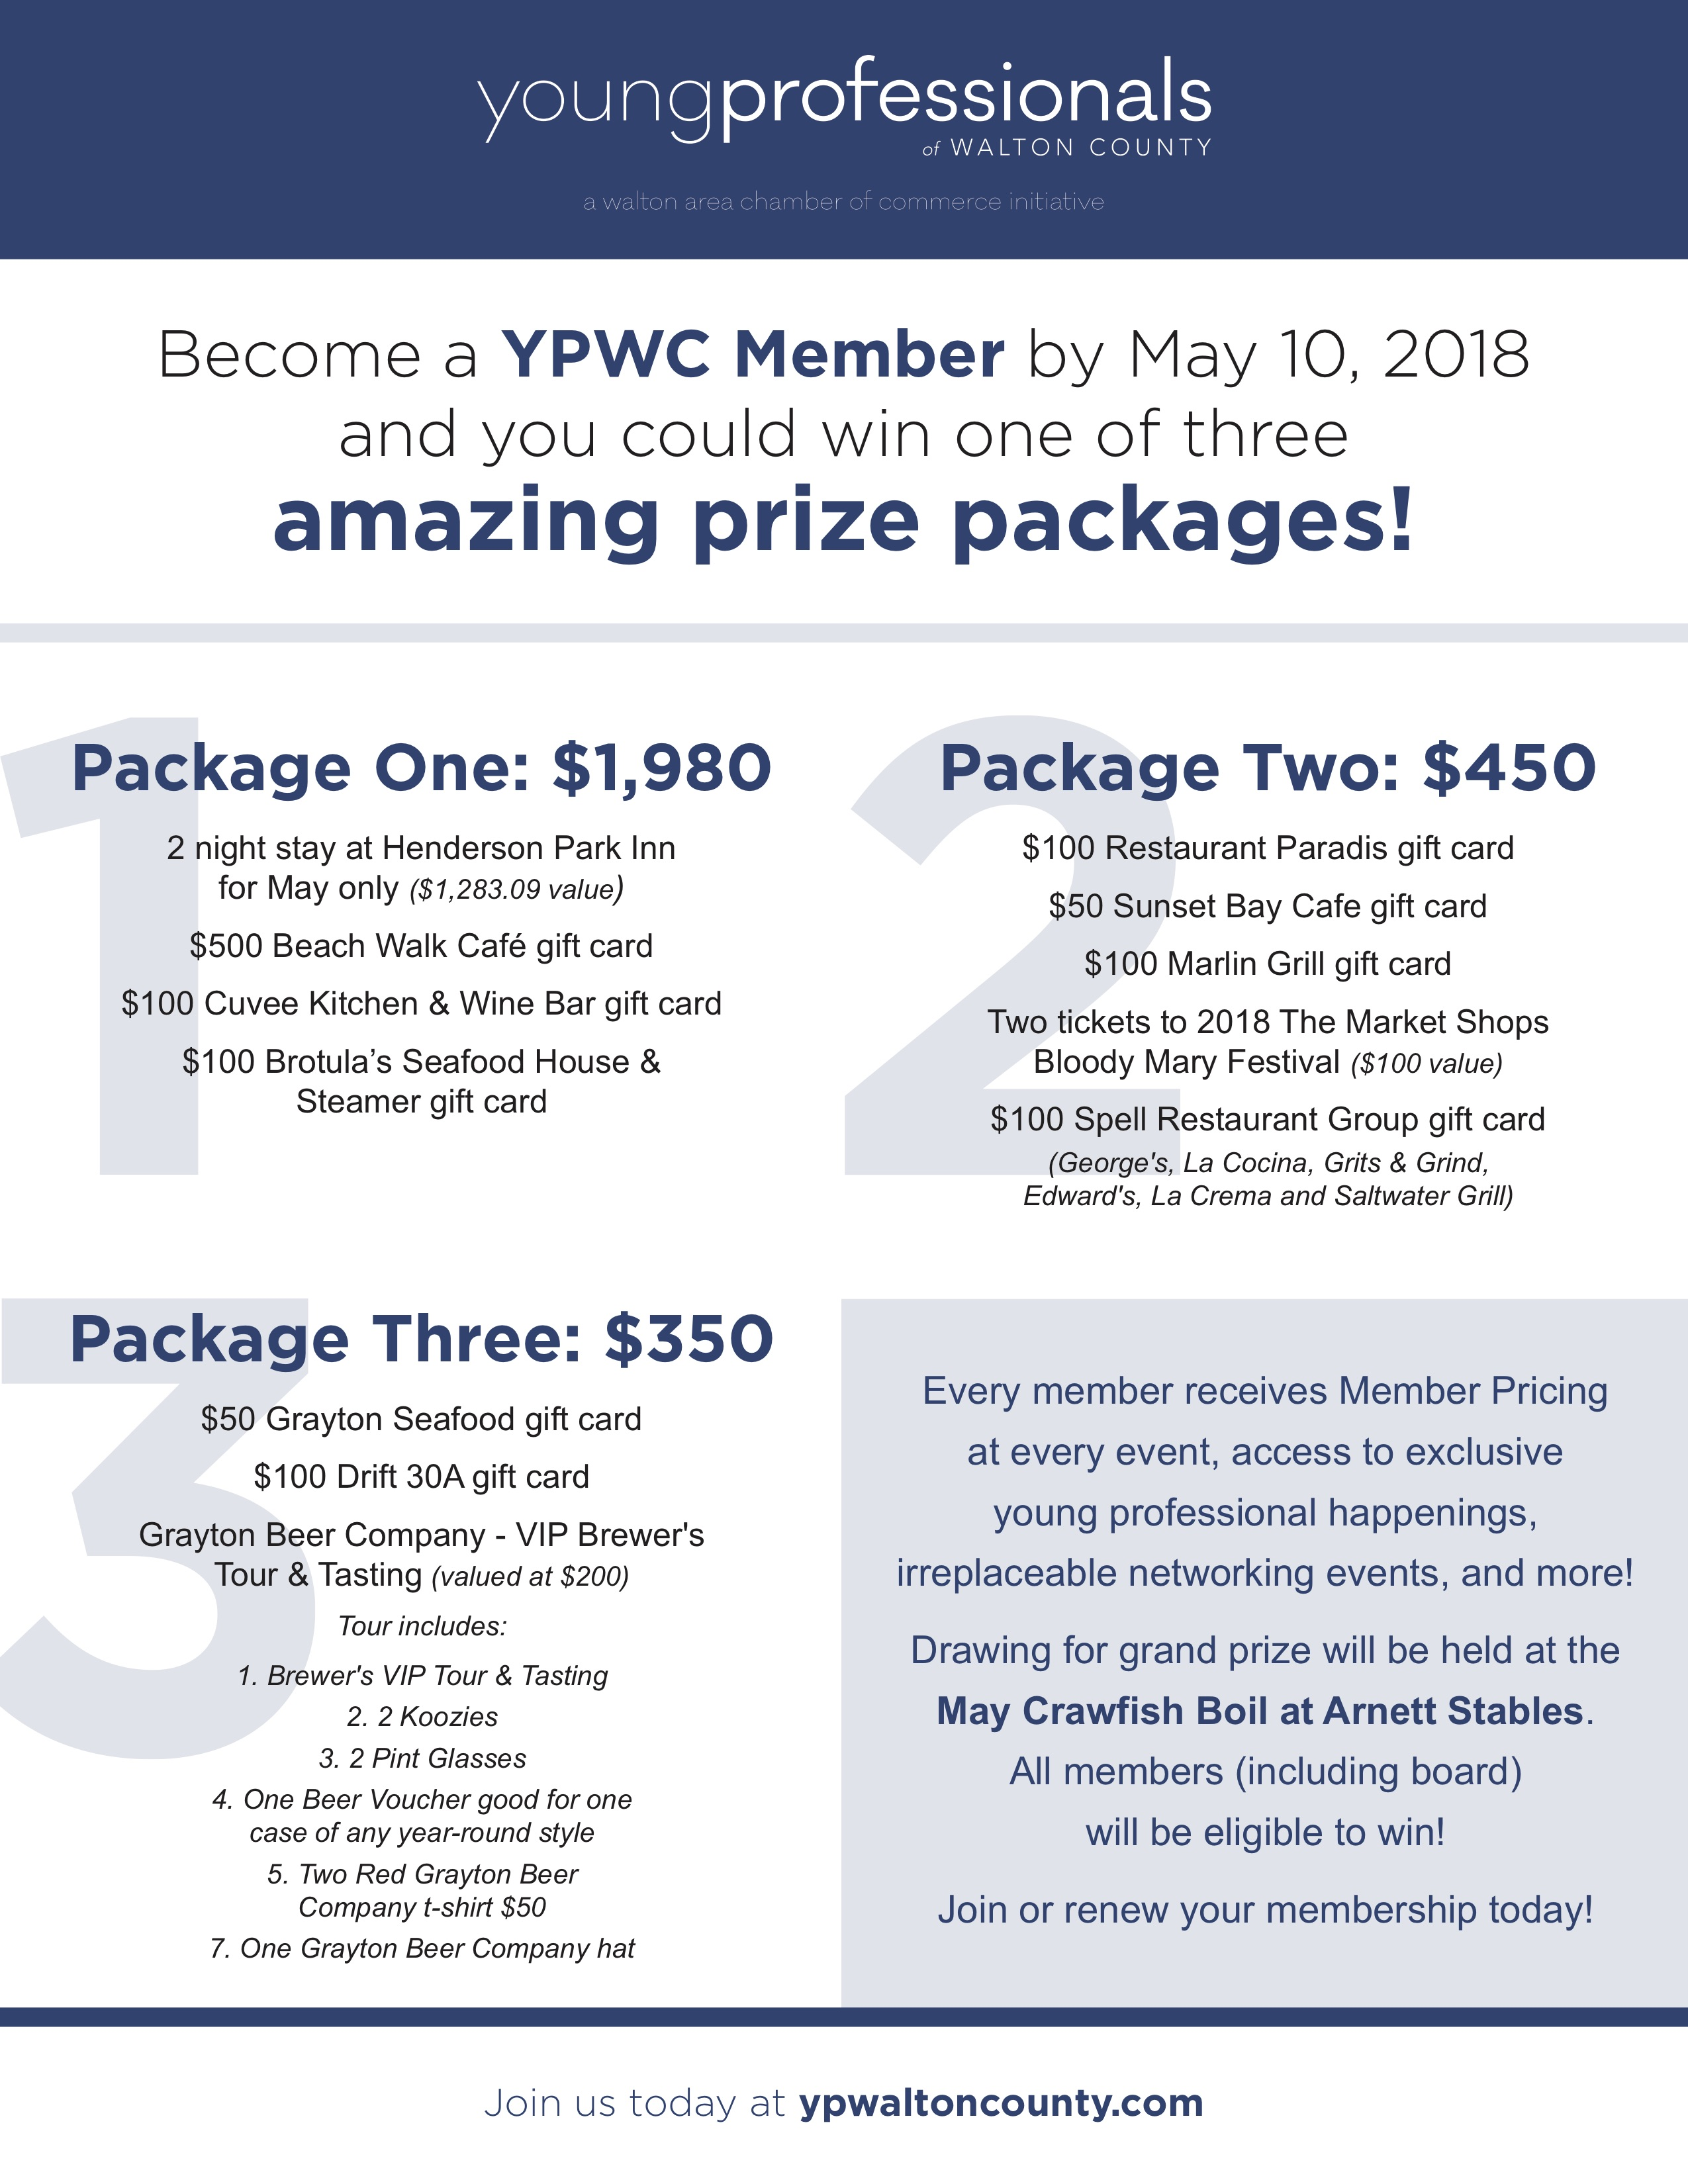 Young Professionals of Walton County Host Membership Drive With Up